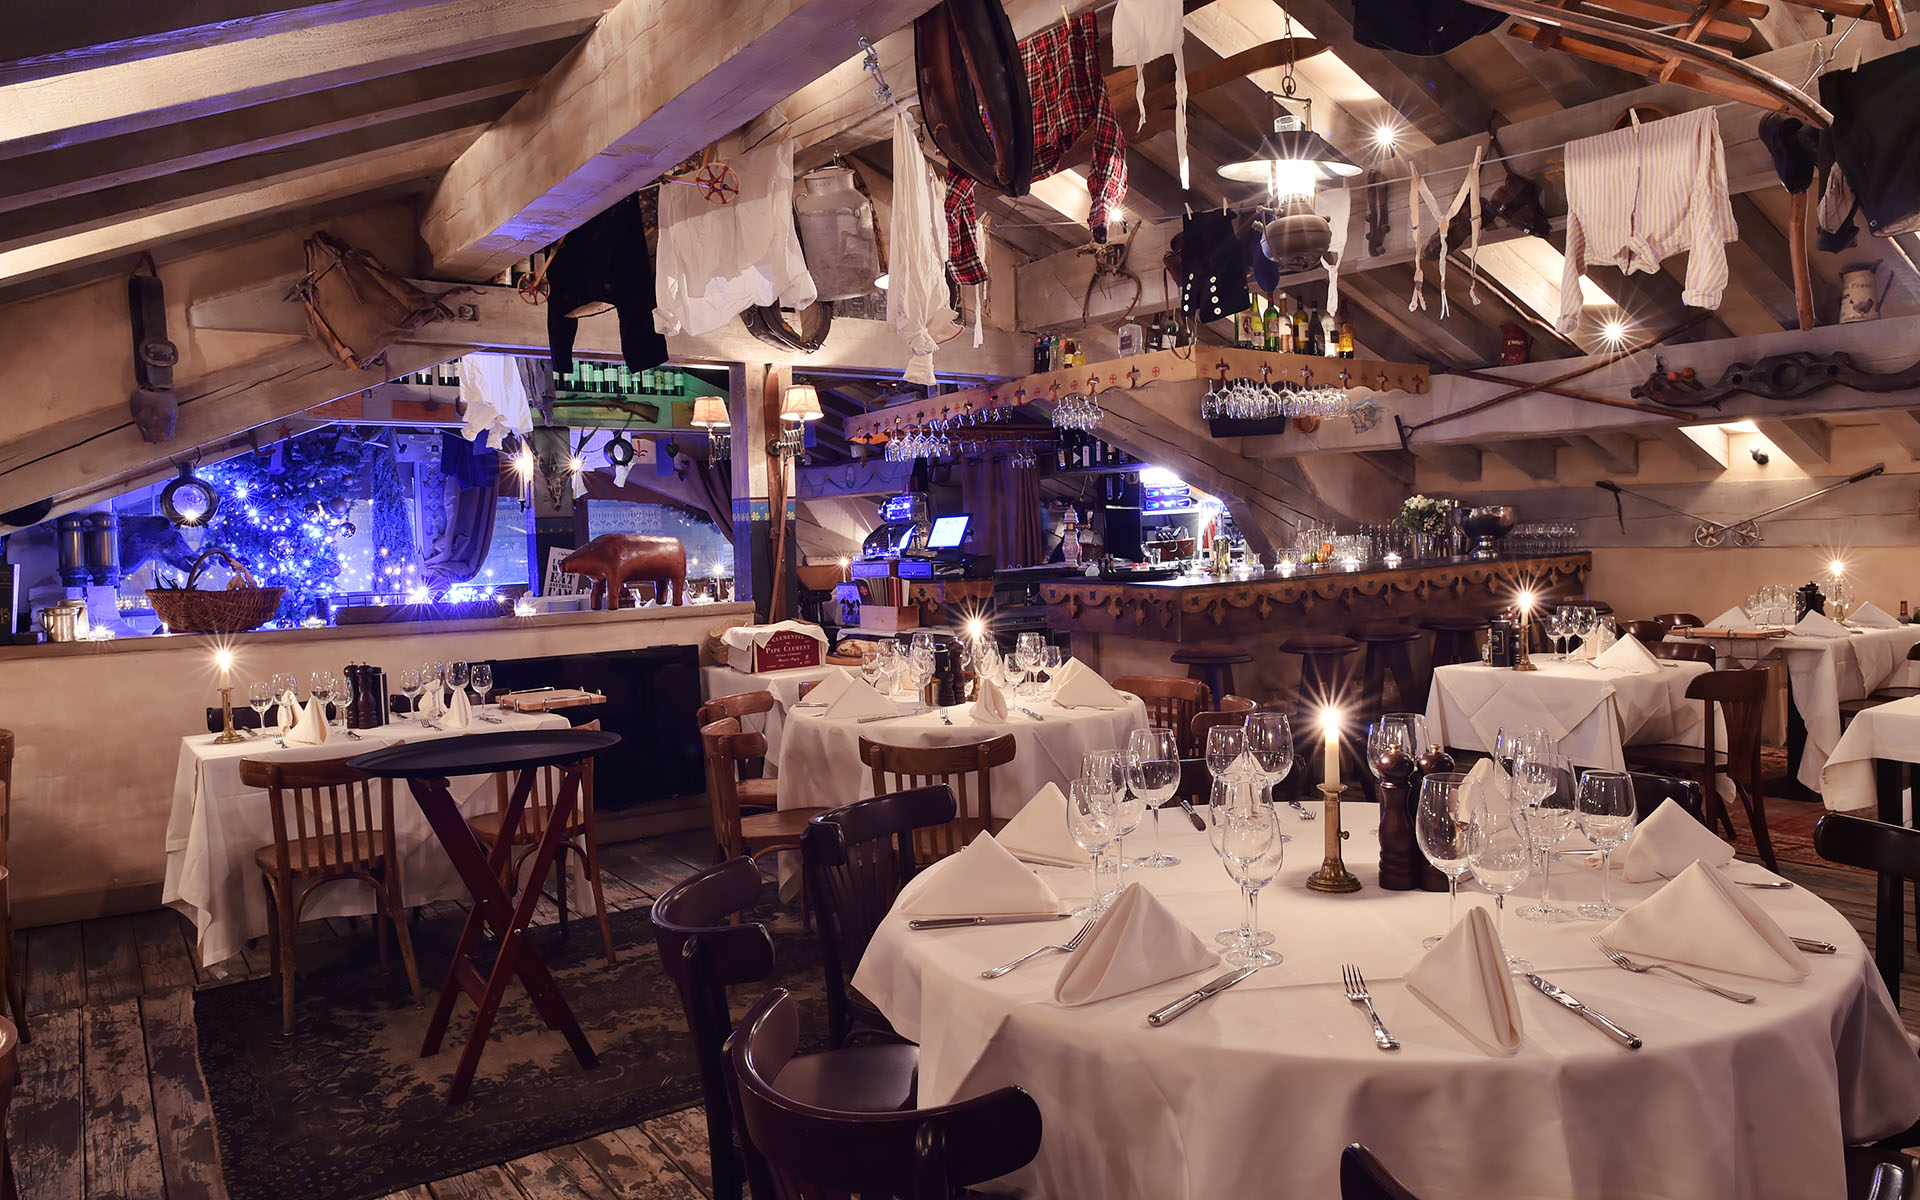 302/Site Maison Tournier/Restaurant/anerie/anerie_courchevel_restaurant_2.jpg